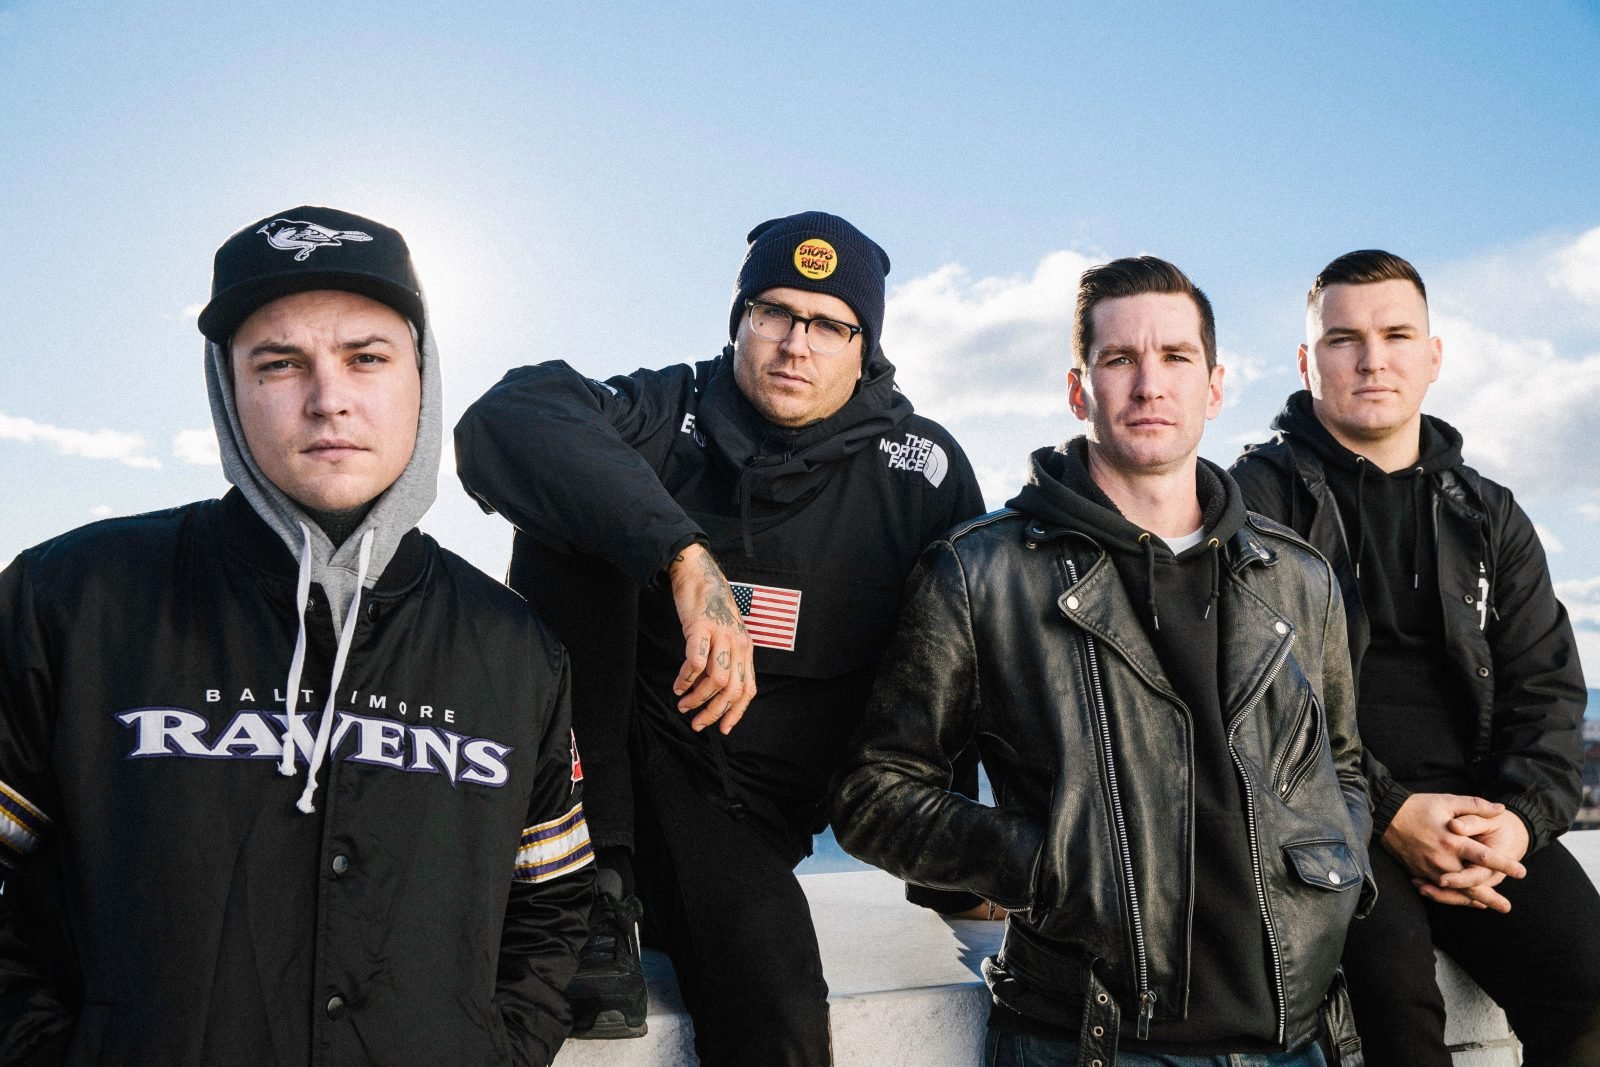 Photograph shows the four members of The Amity Affliction looking moody in front of a blue sky